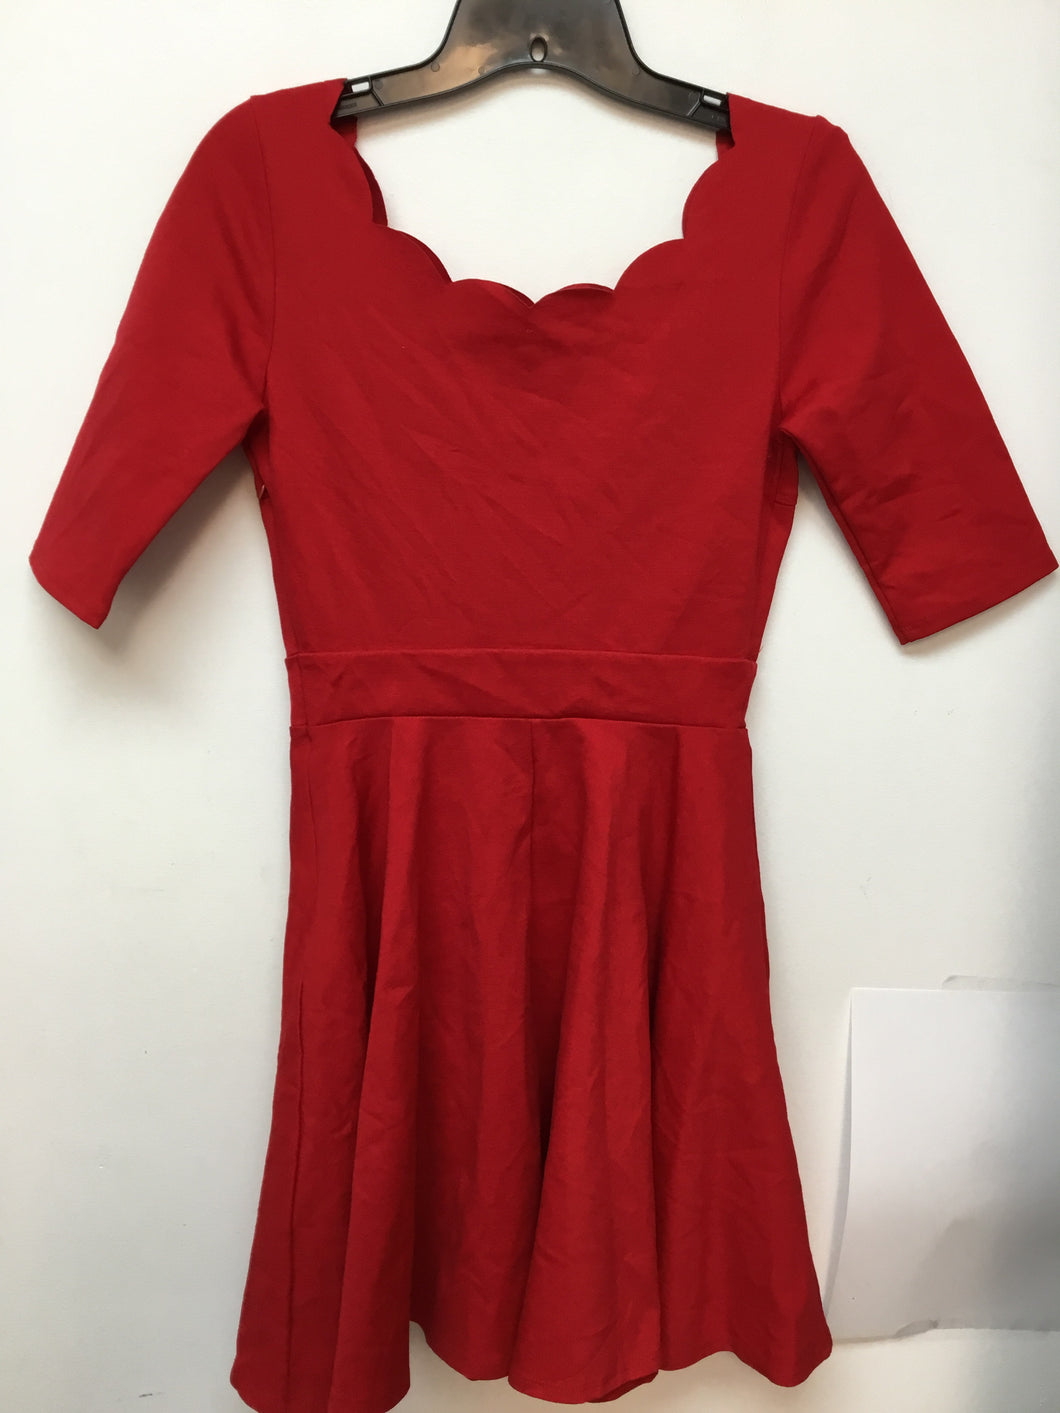 Lulus red dress size small